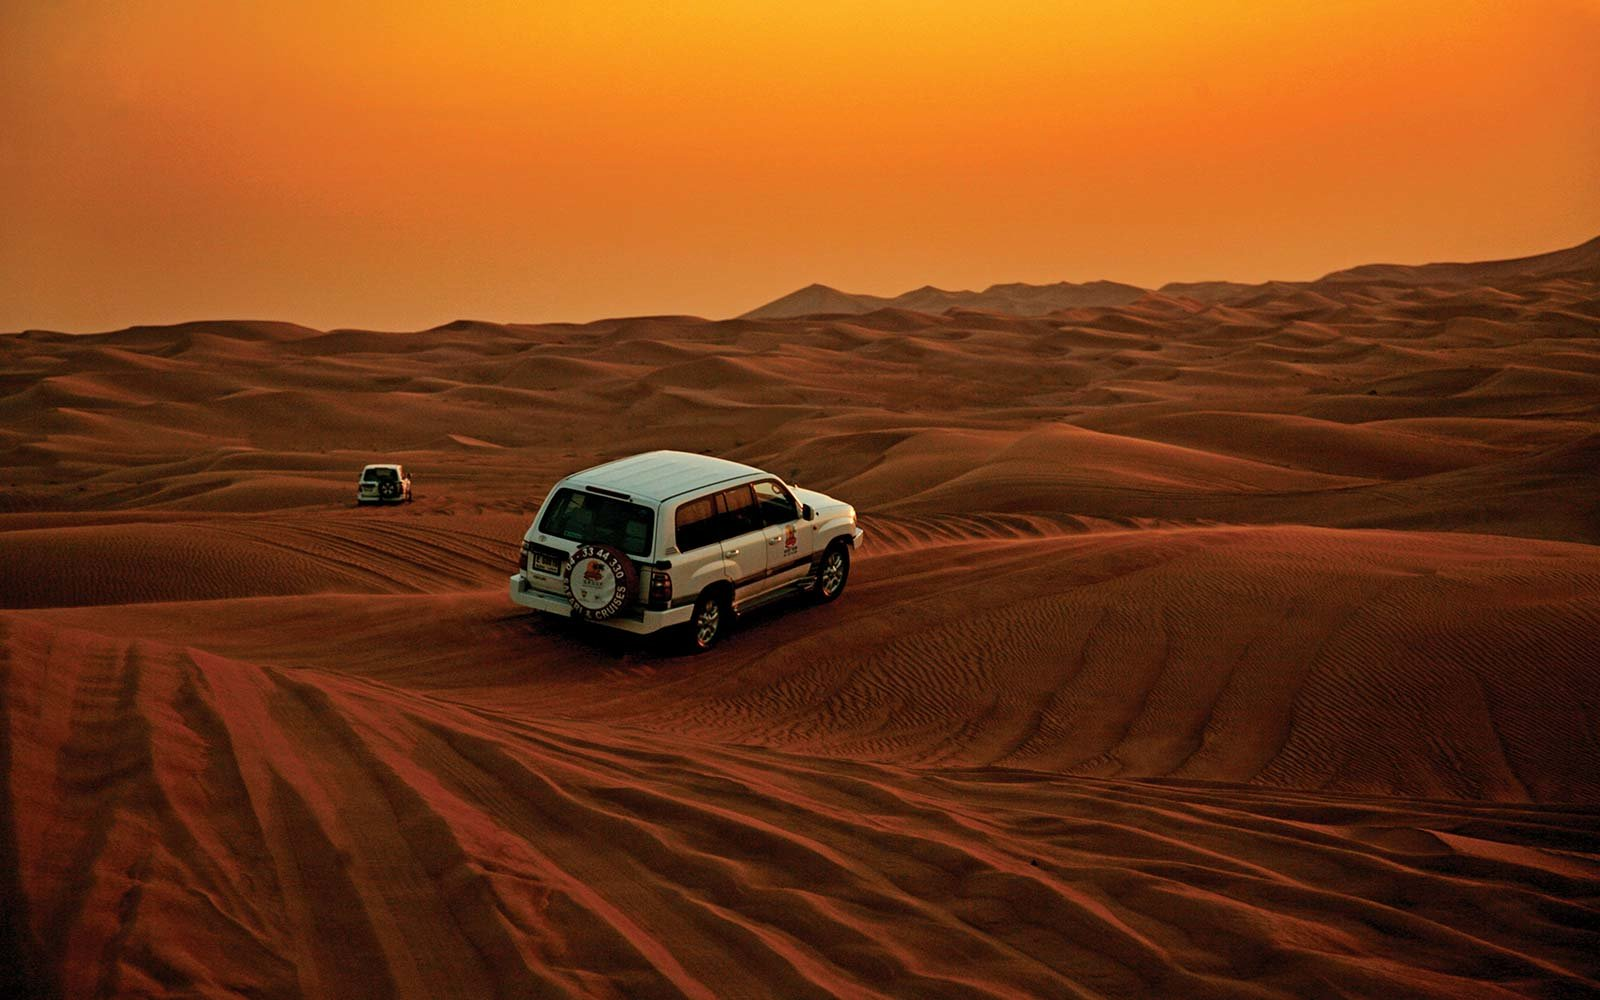 travel agency perk offers benefits dubai desert excursion